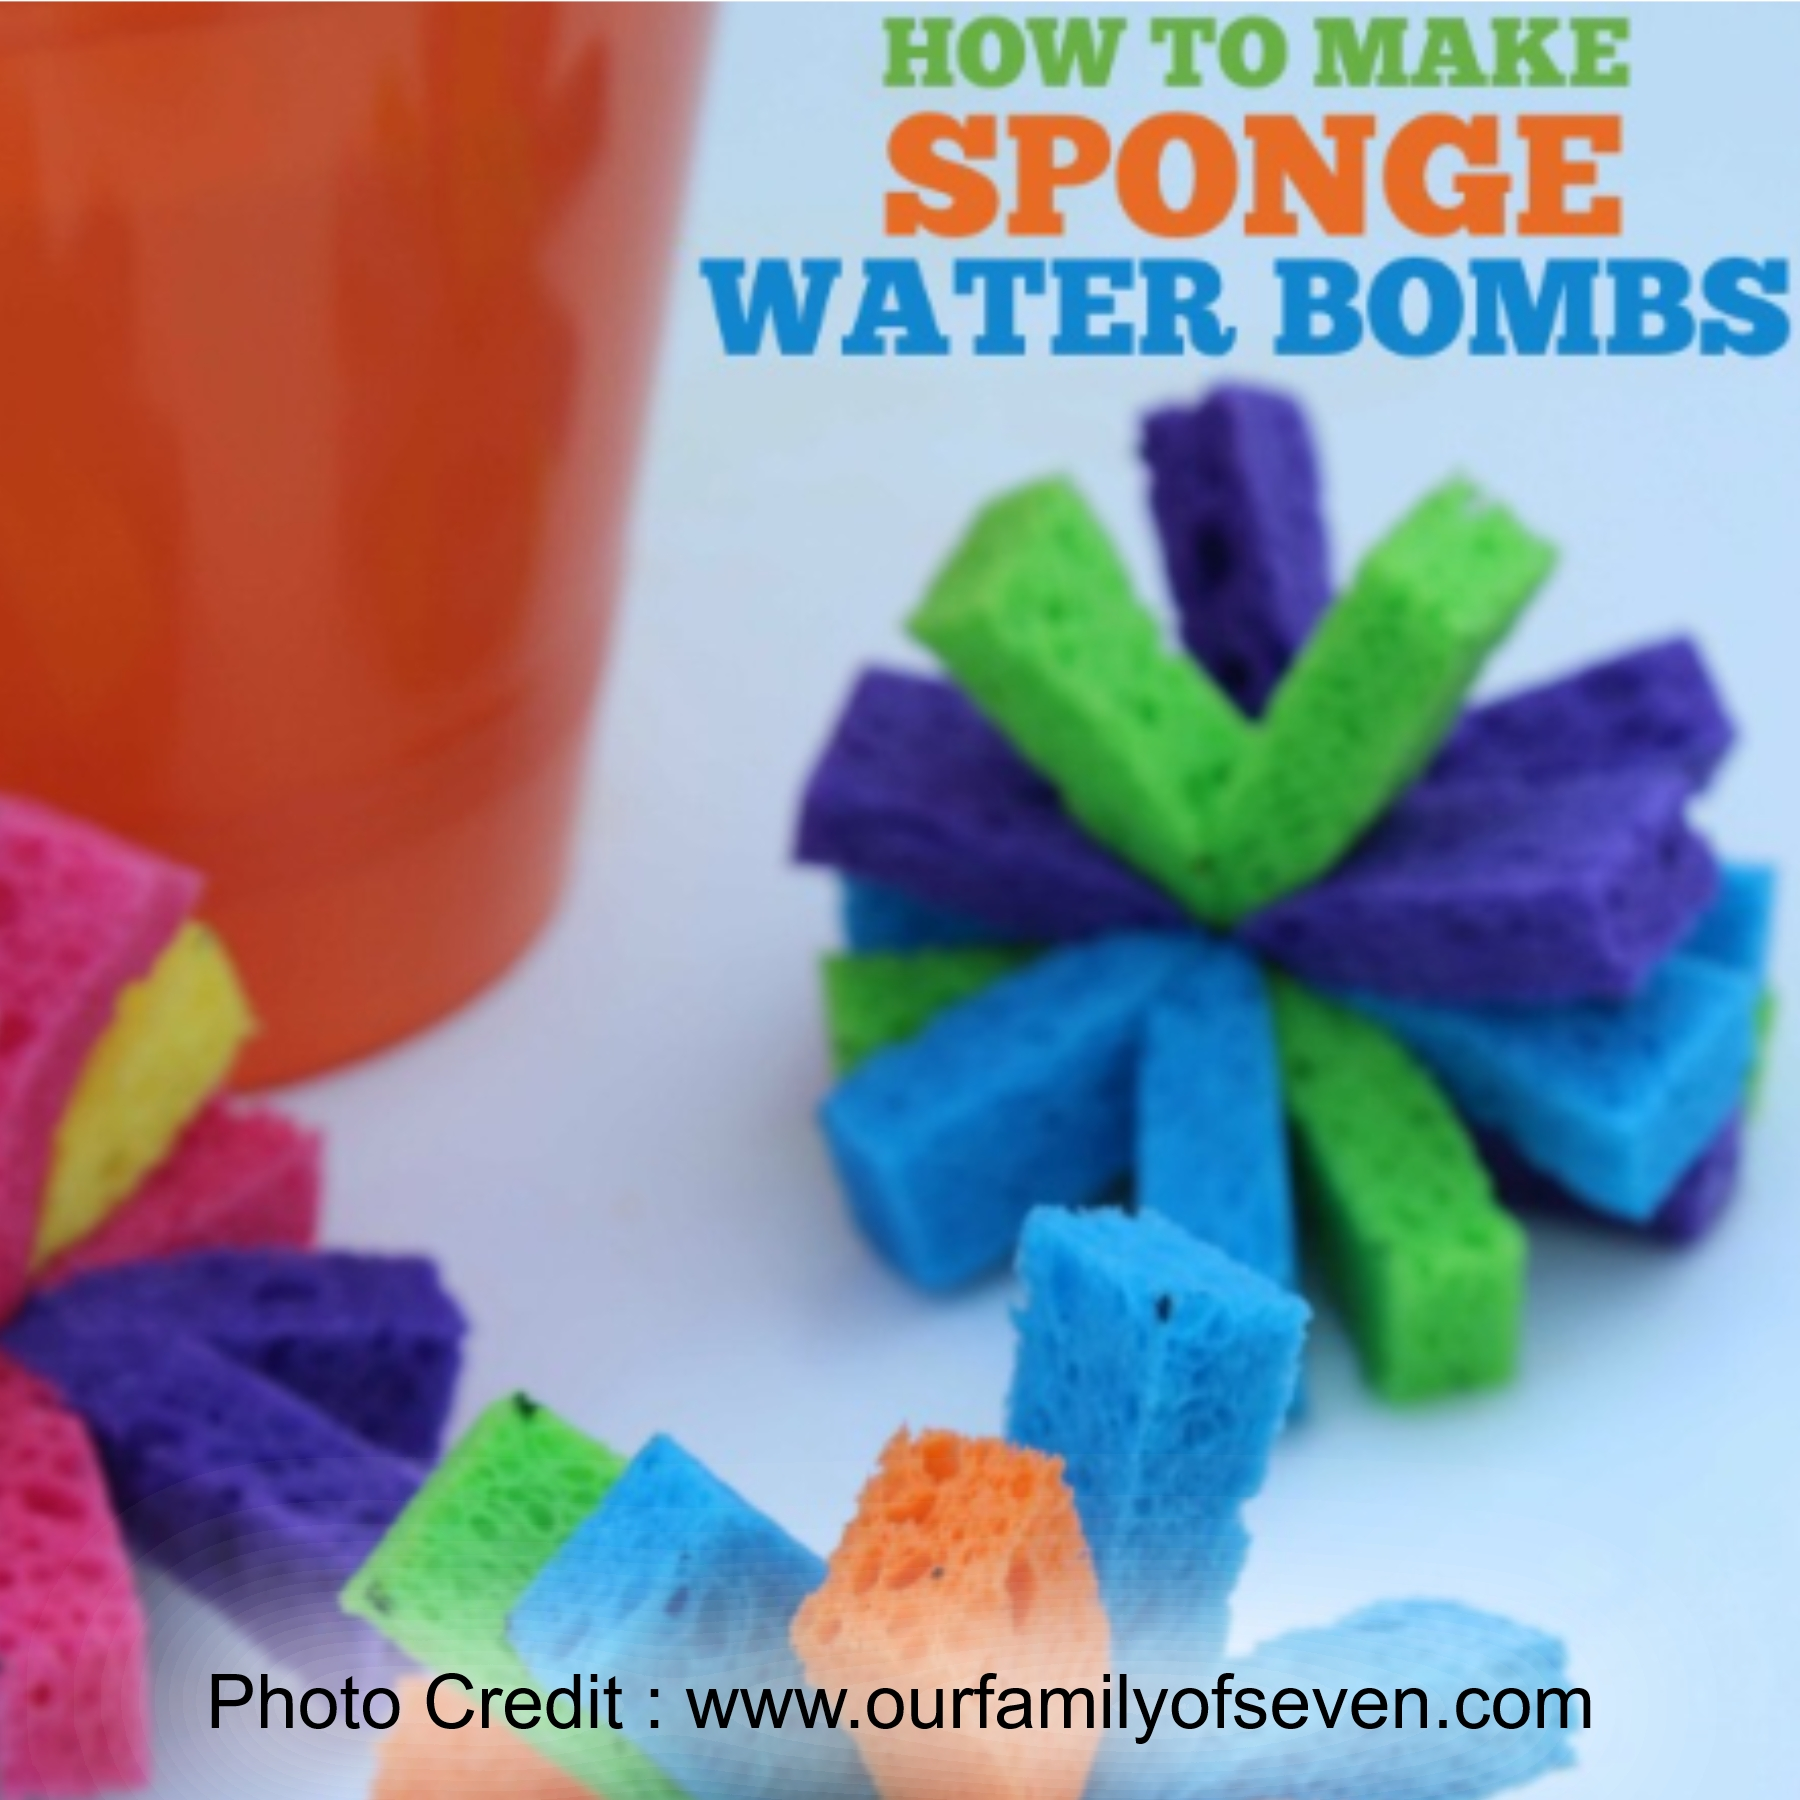 Sponge Water Bombs from Our family of Seven